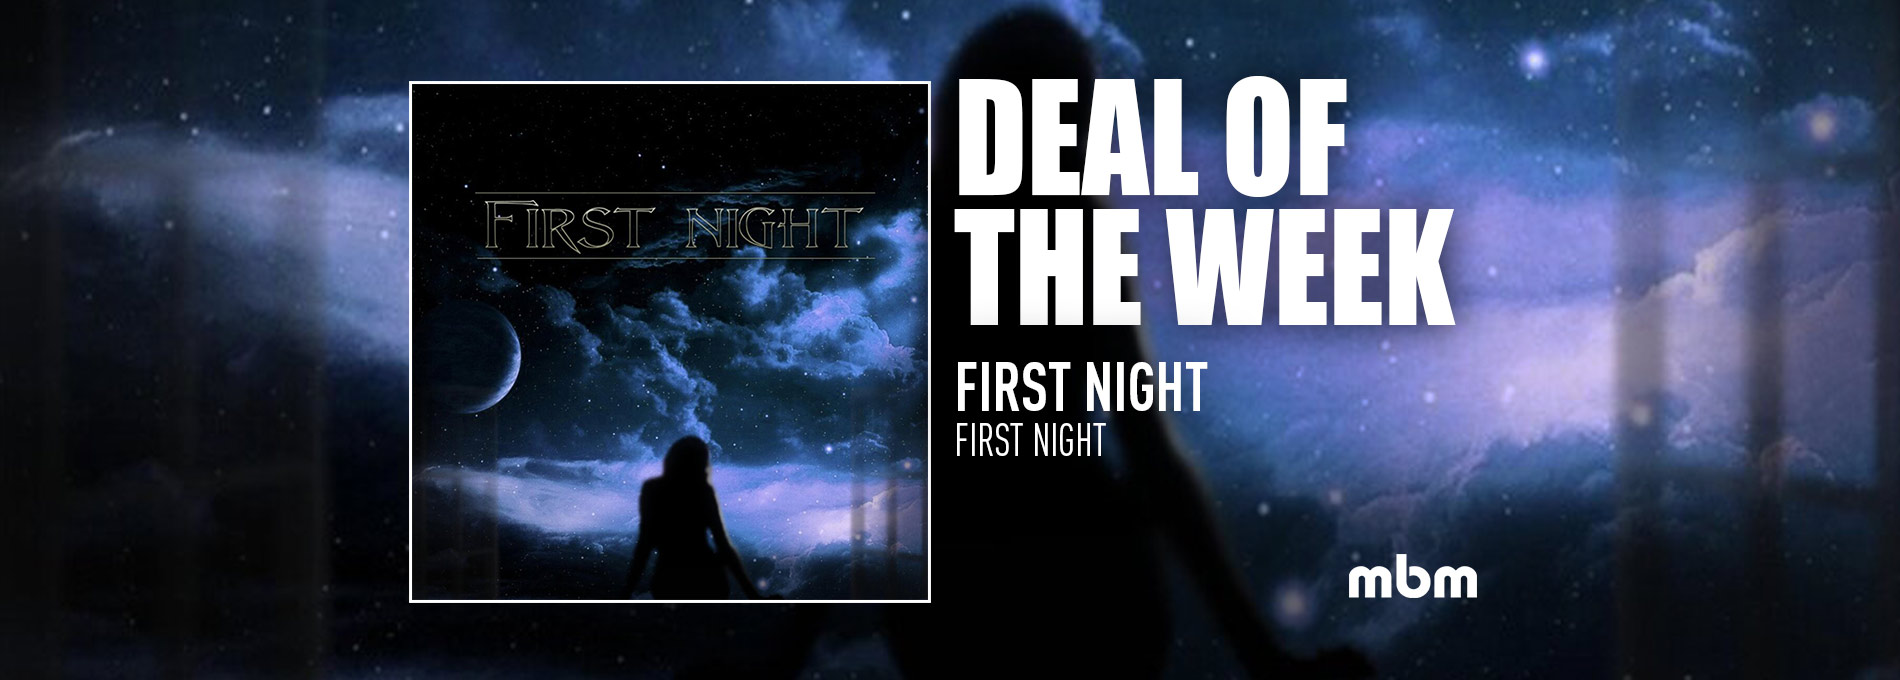 Deal Of The Week: FIRST NIGHT - First Night